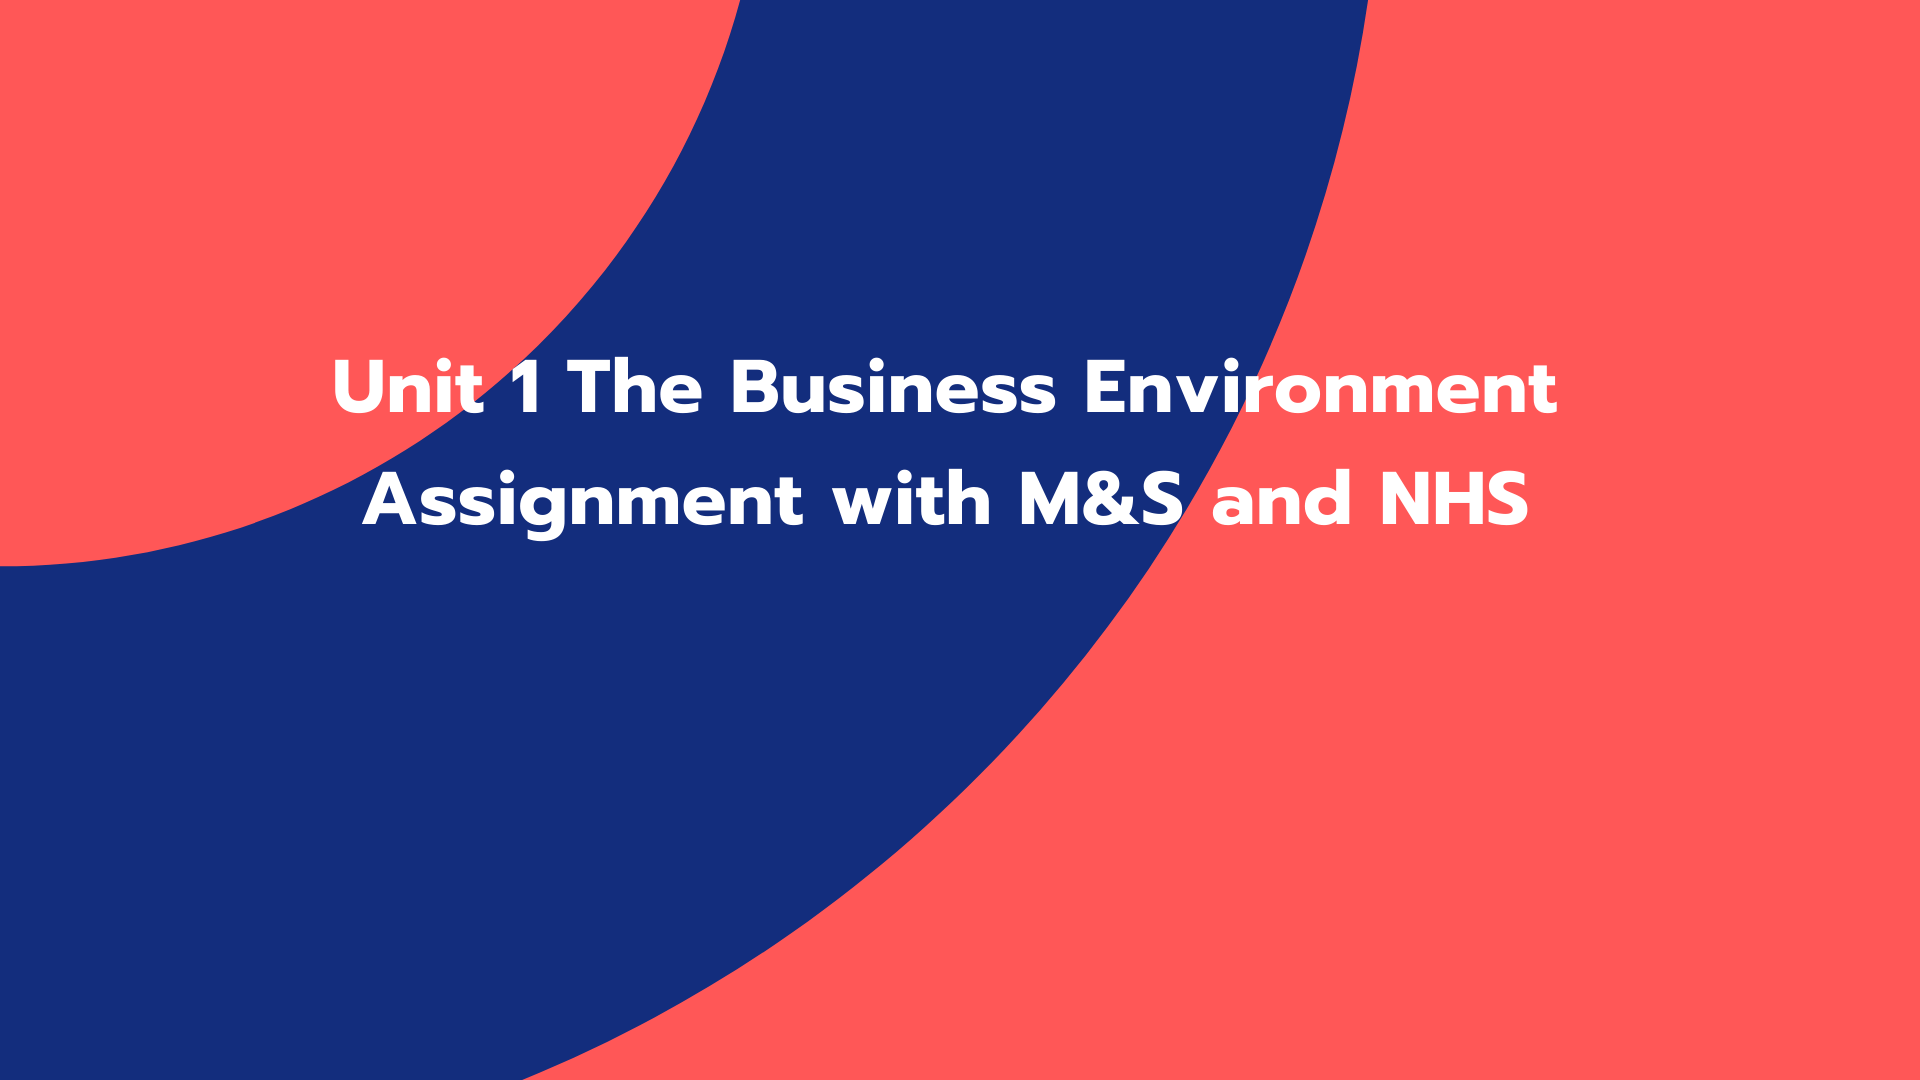 Unit 1 The Business Environment Assignment with M&S and NHS